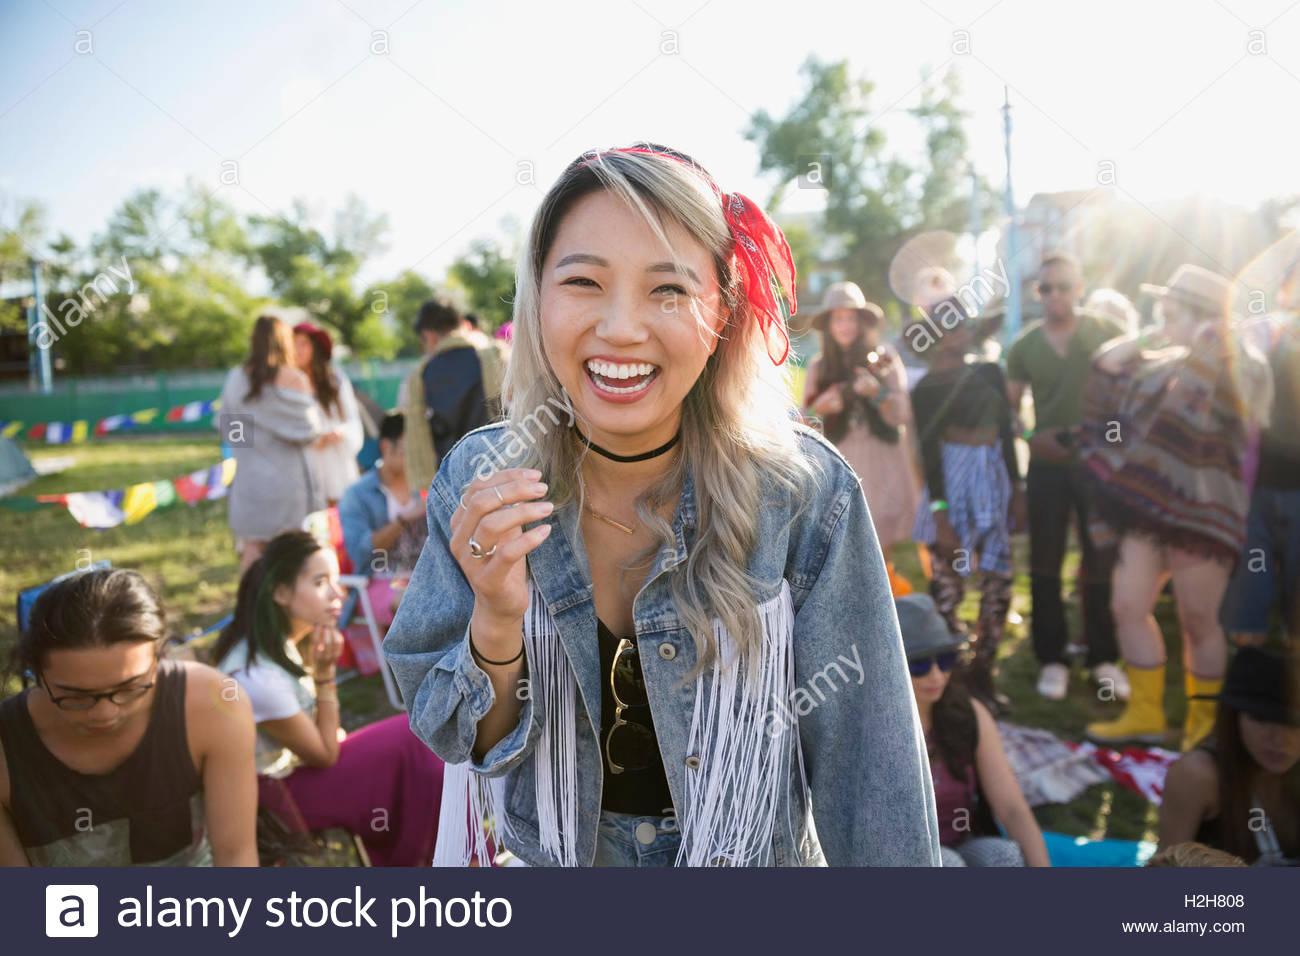 Portrait laughing young woman at summer music festival campsite - Stock Image